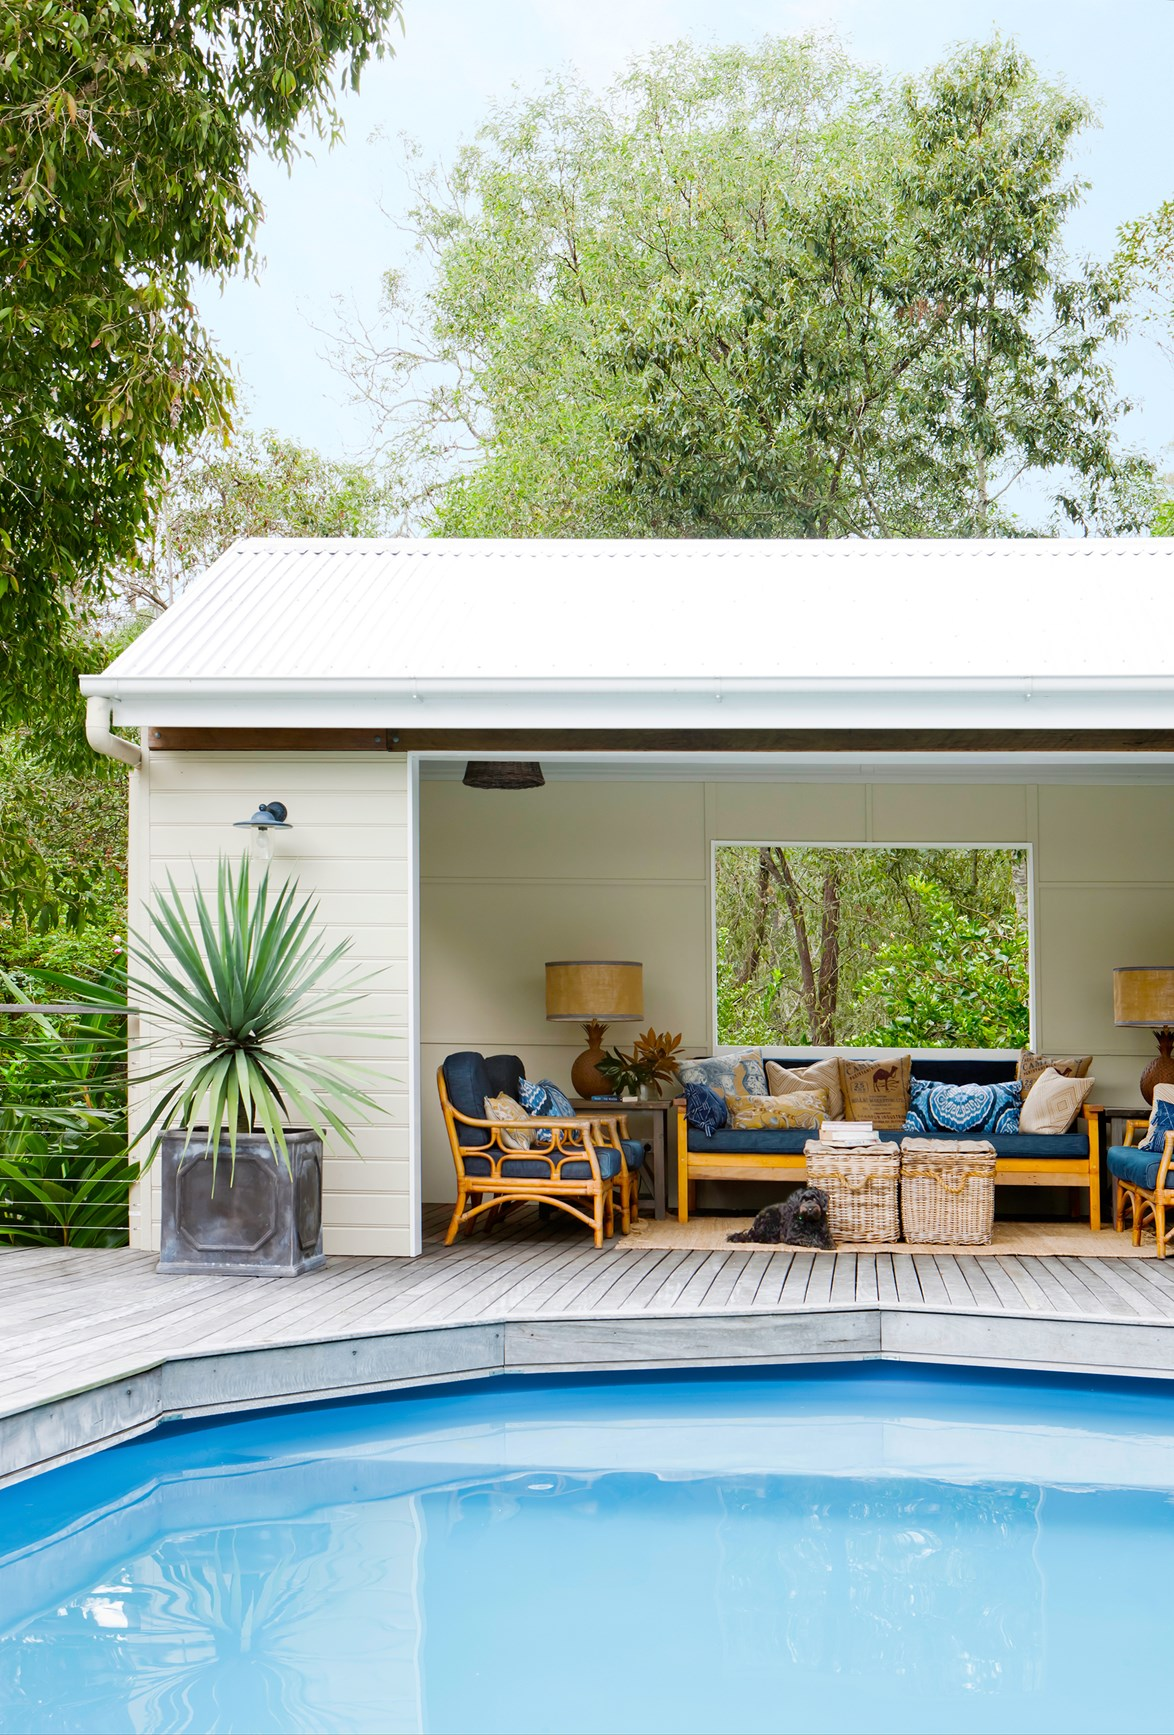 How to plan your pool cabana | Homes To Love